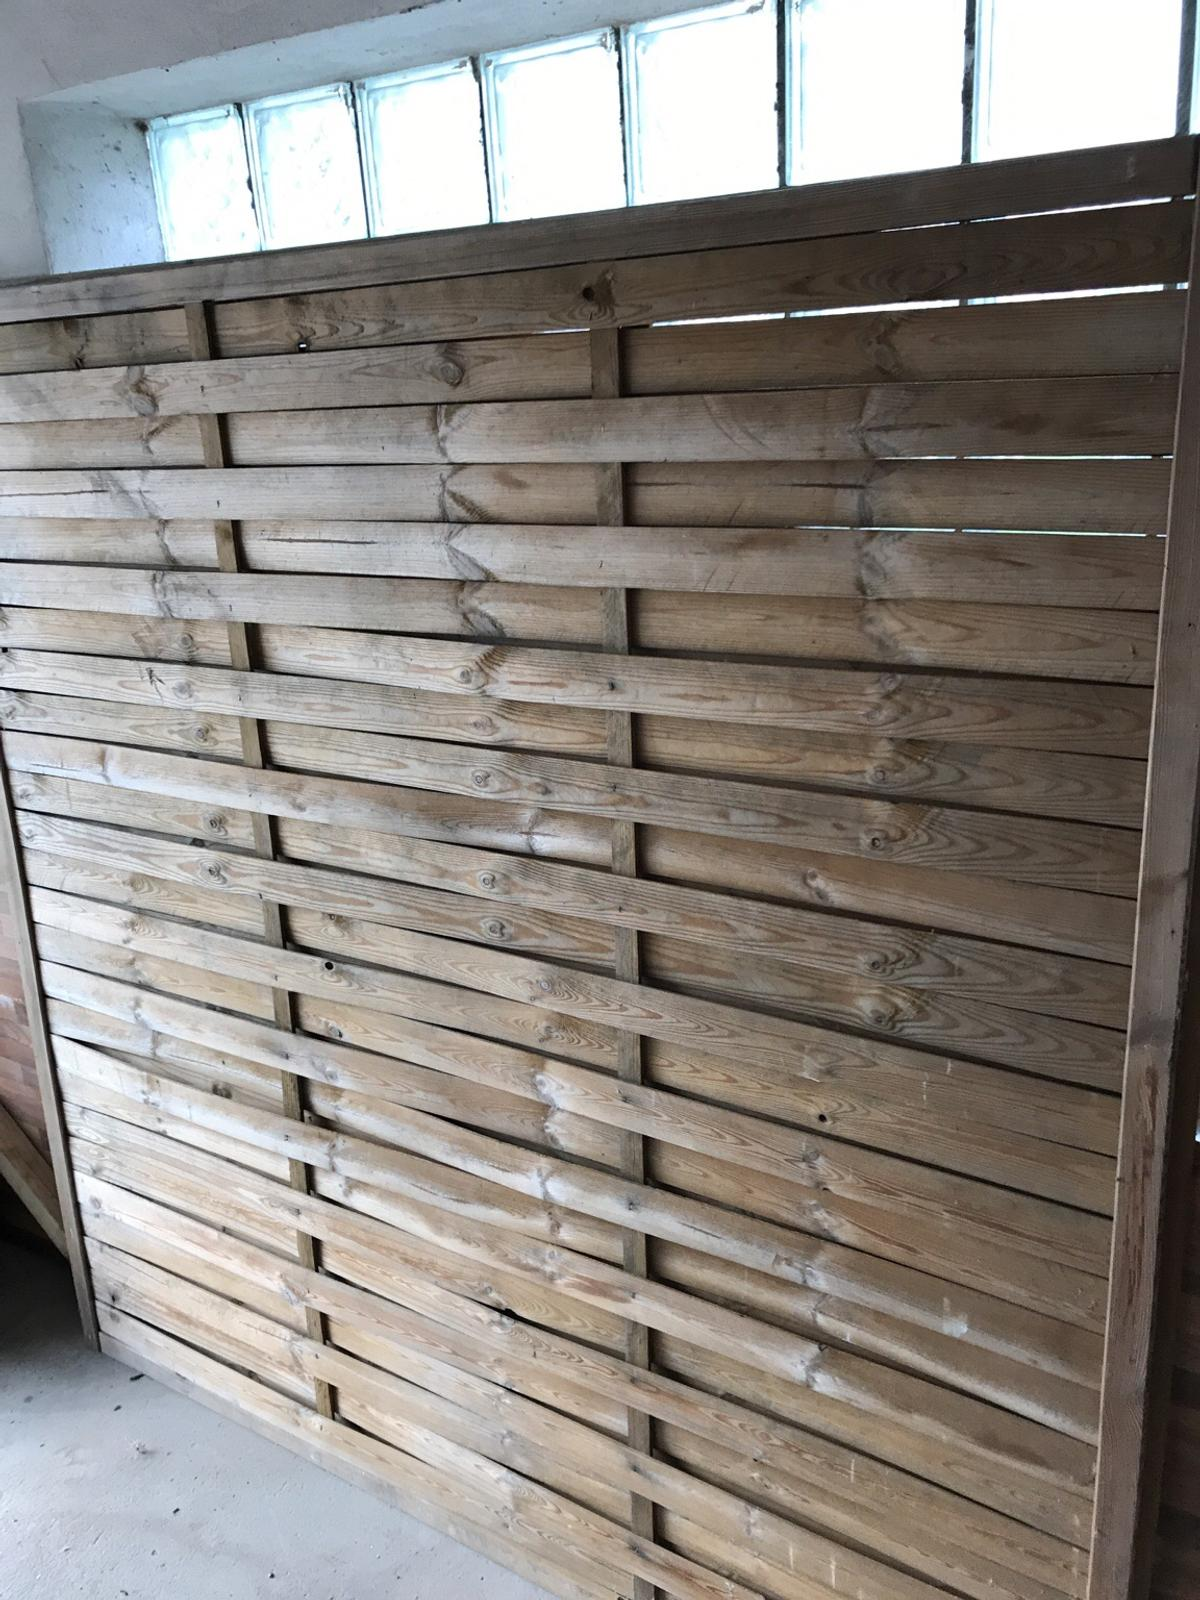 2x Holz Lamellenzaun 180x180 In 76761 Rulzheim For 15 00 For Sale